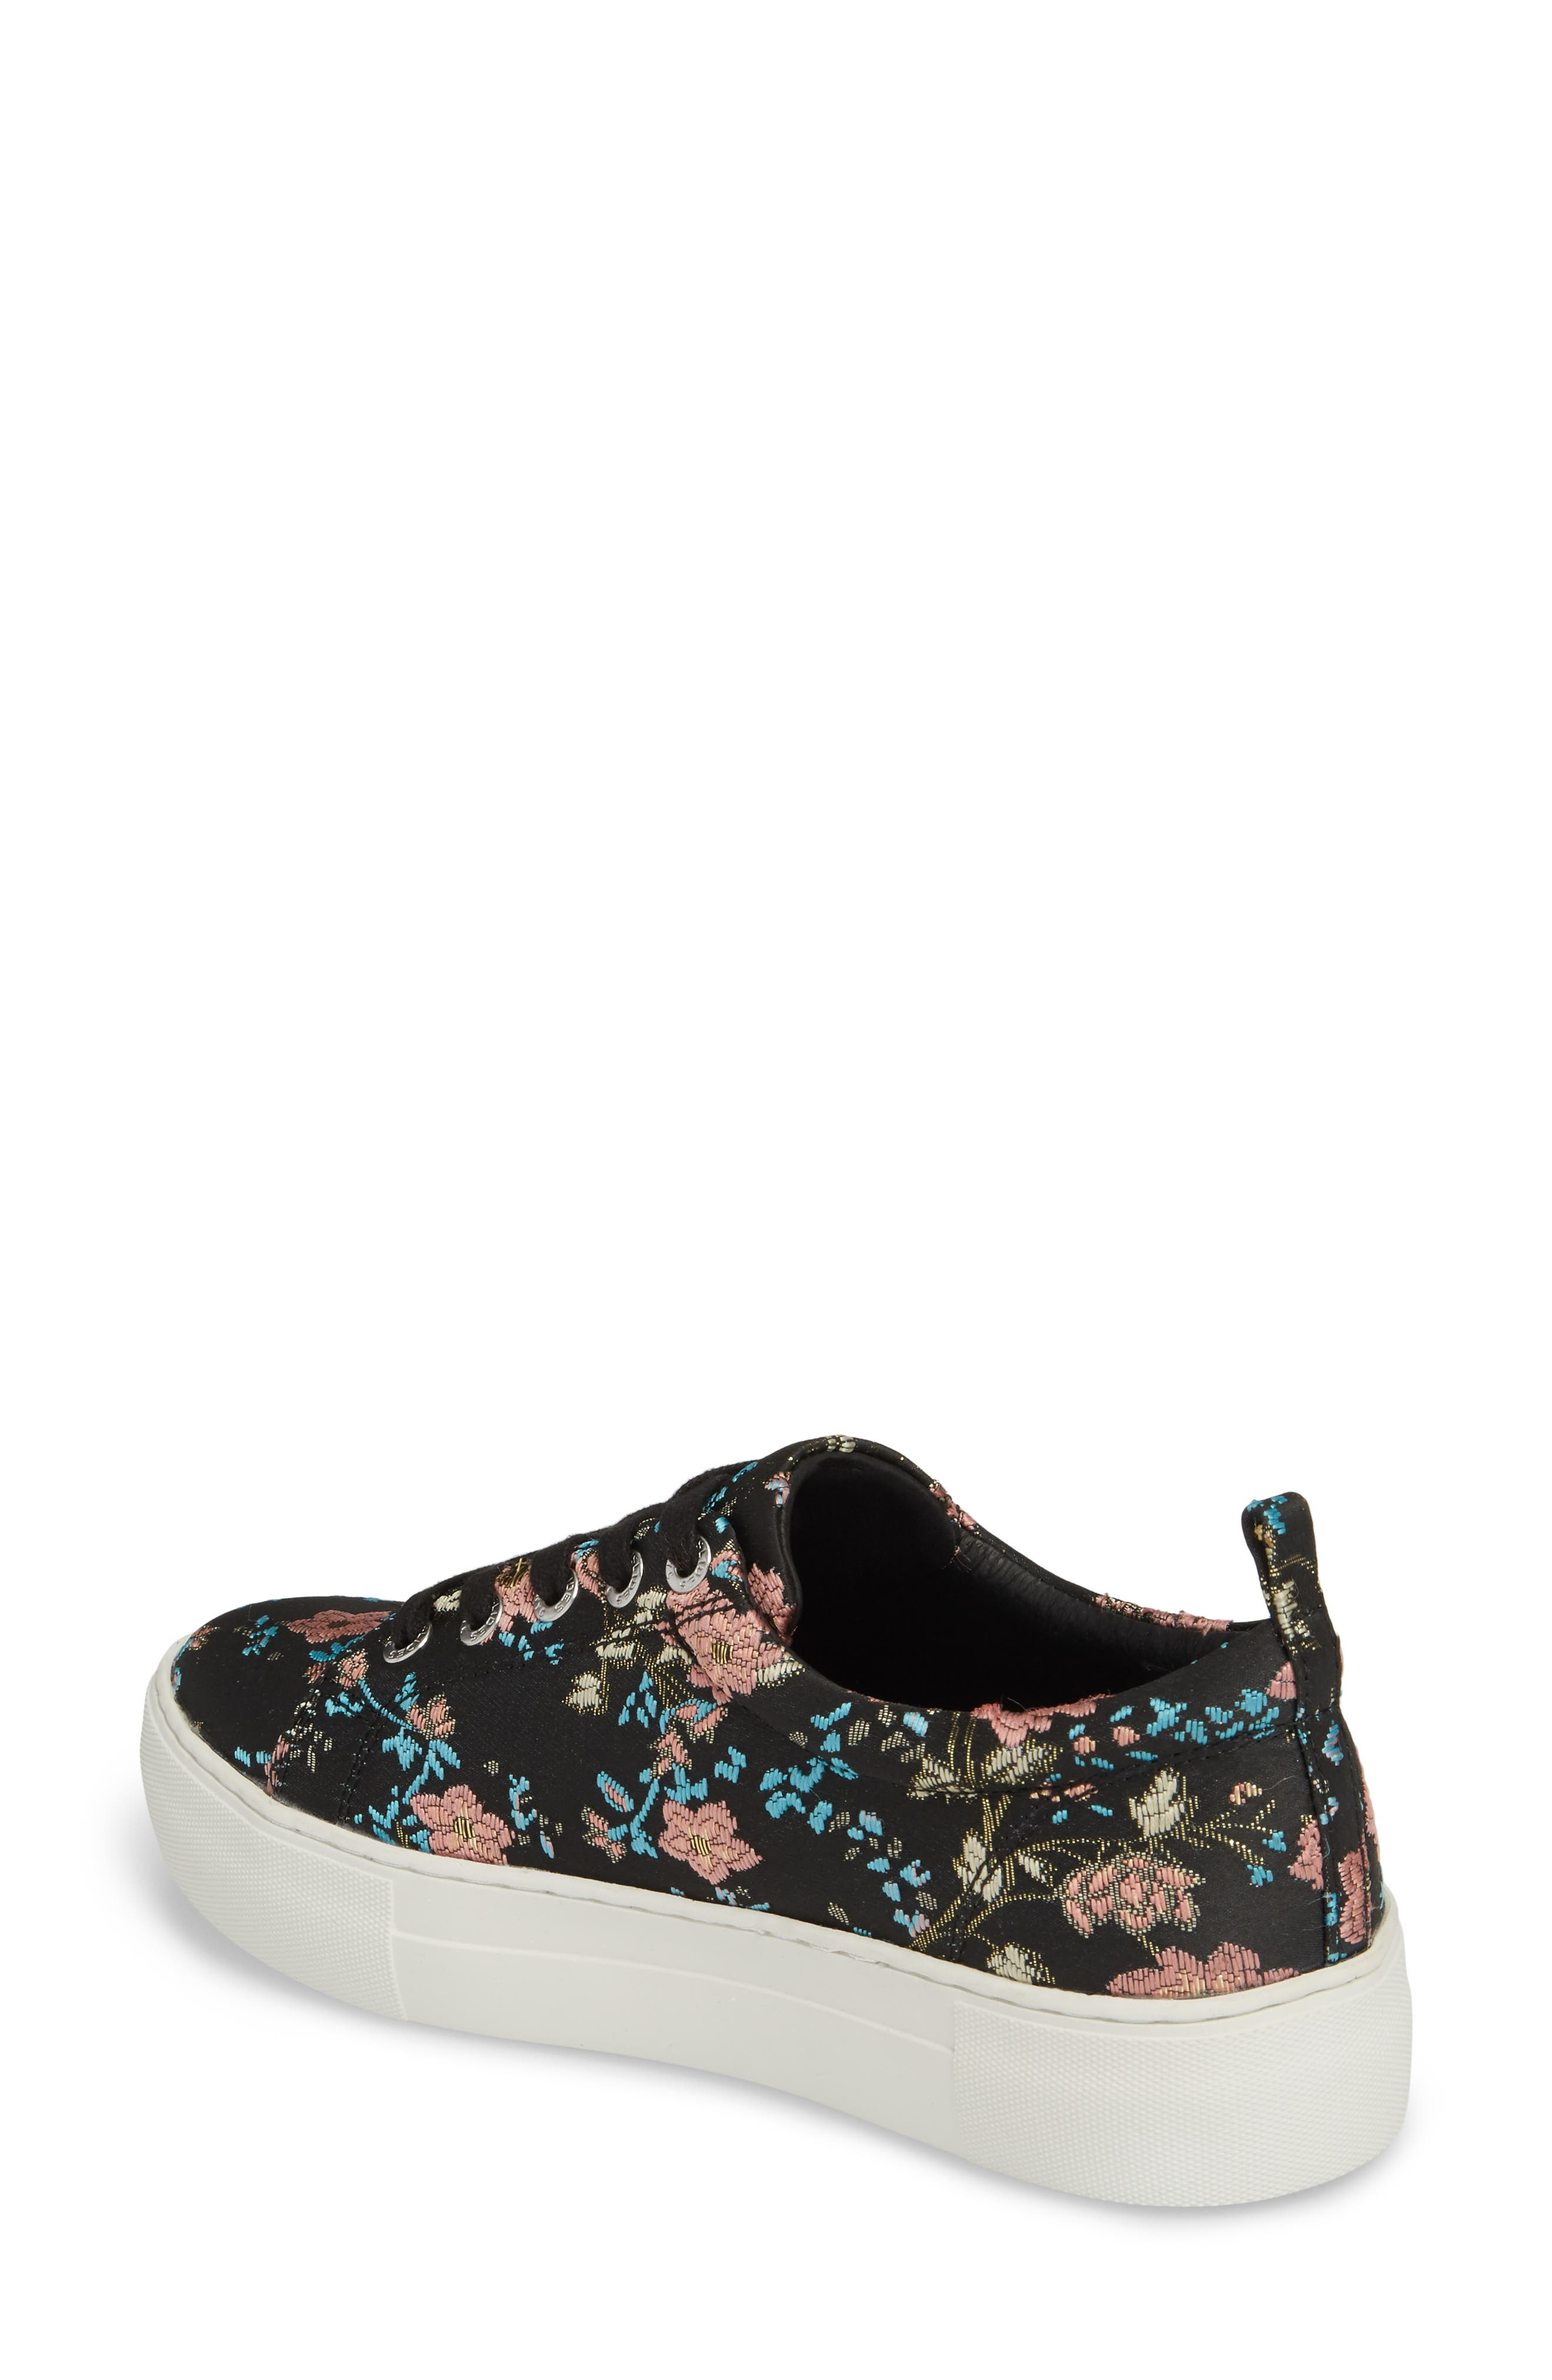 Assure Embroidered Platform Sneaker,                             Alternate thumbnail 2, color,                             016